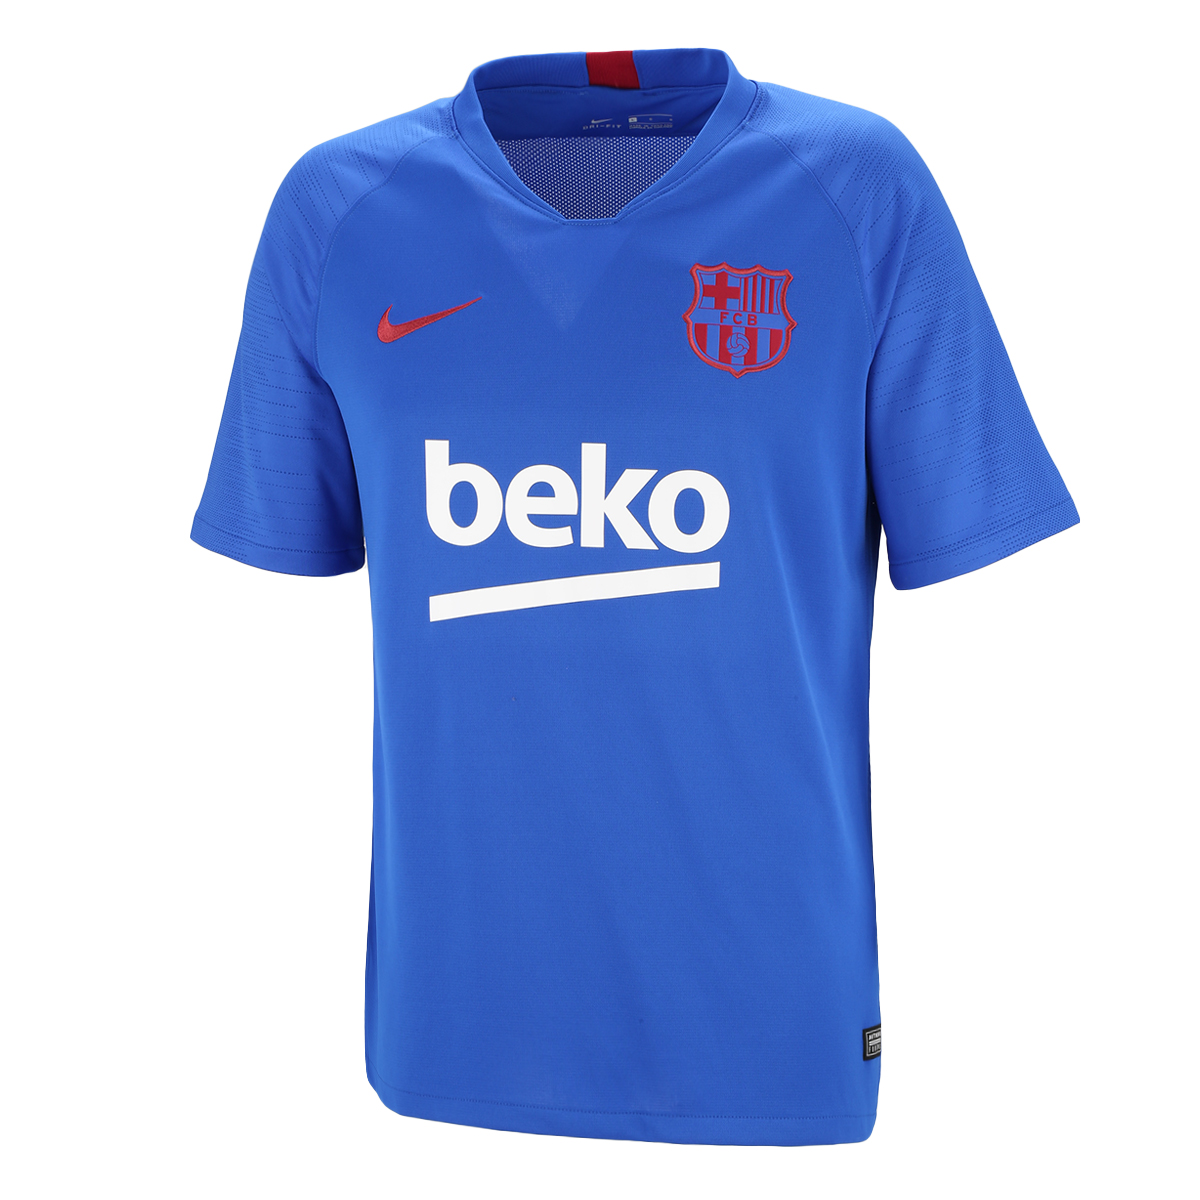 Camiseta Nike Breathe,  image number null